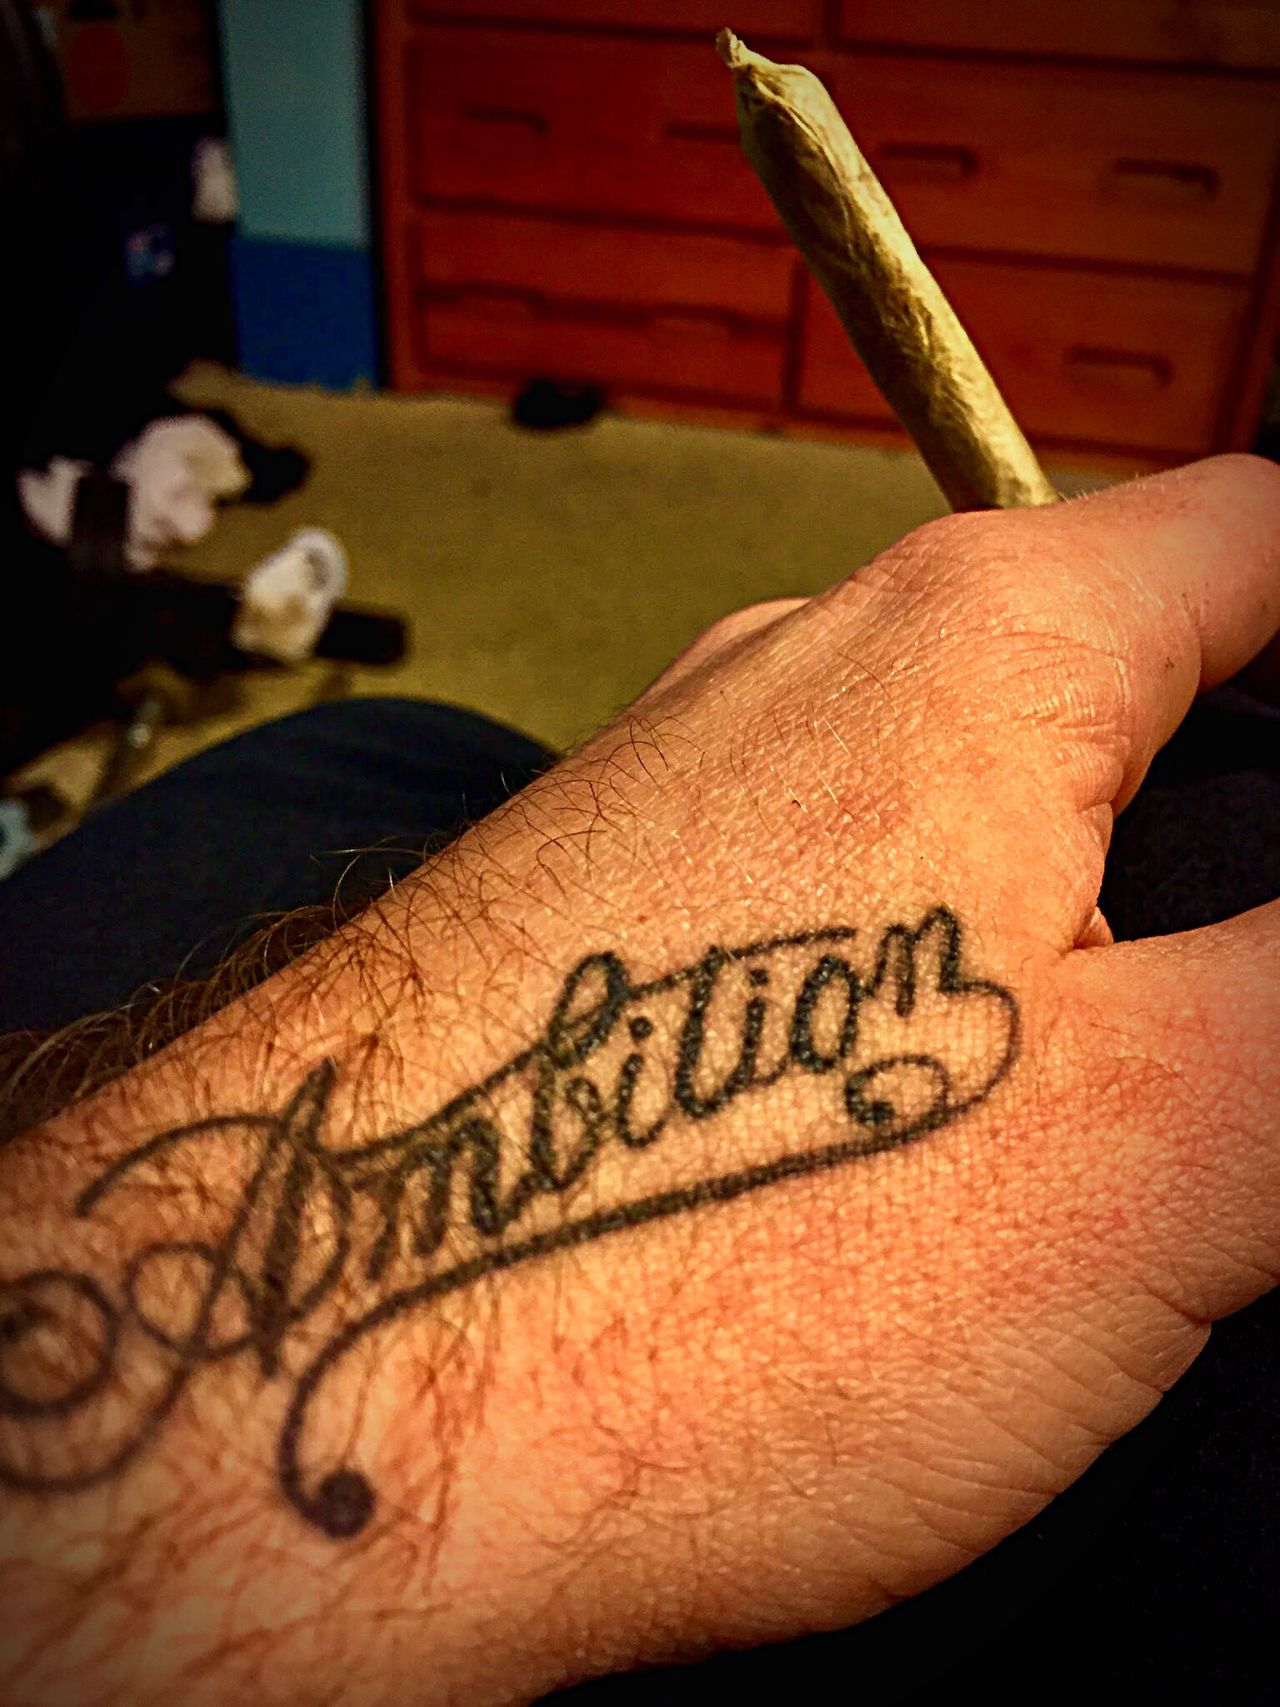 """Ambition is priceless and I put that on my name"" -Wale Ambition Joint Human Hand Human Body Part Real People Lifestyles Text Indoors  Close-up Holding Marijuana Greenisgood High_larry_us Yolo 530 Yolo County WoodLand California DontKillMyVibe Smoke Weed Cannabis Plant Wakeup"